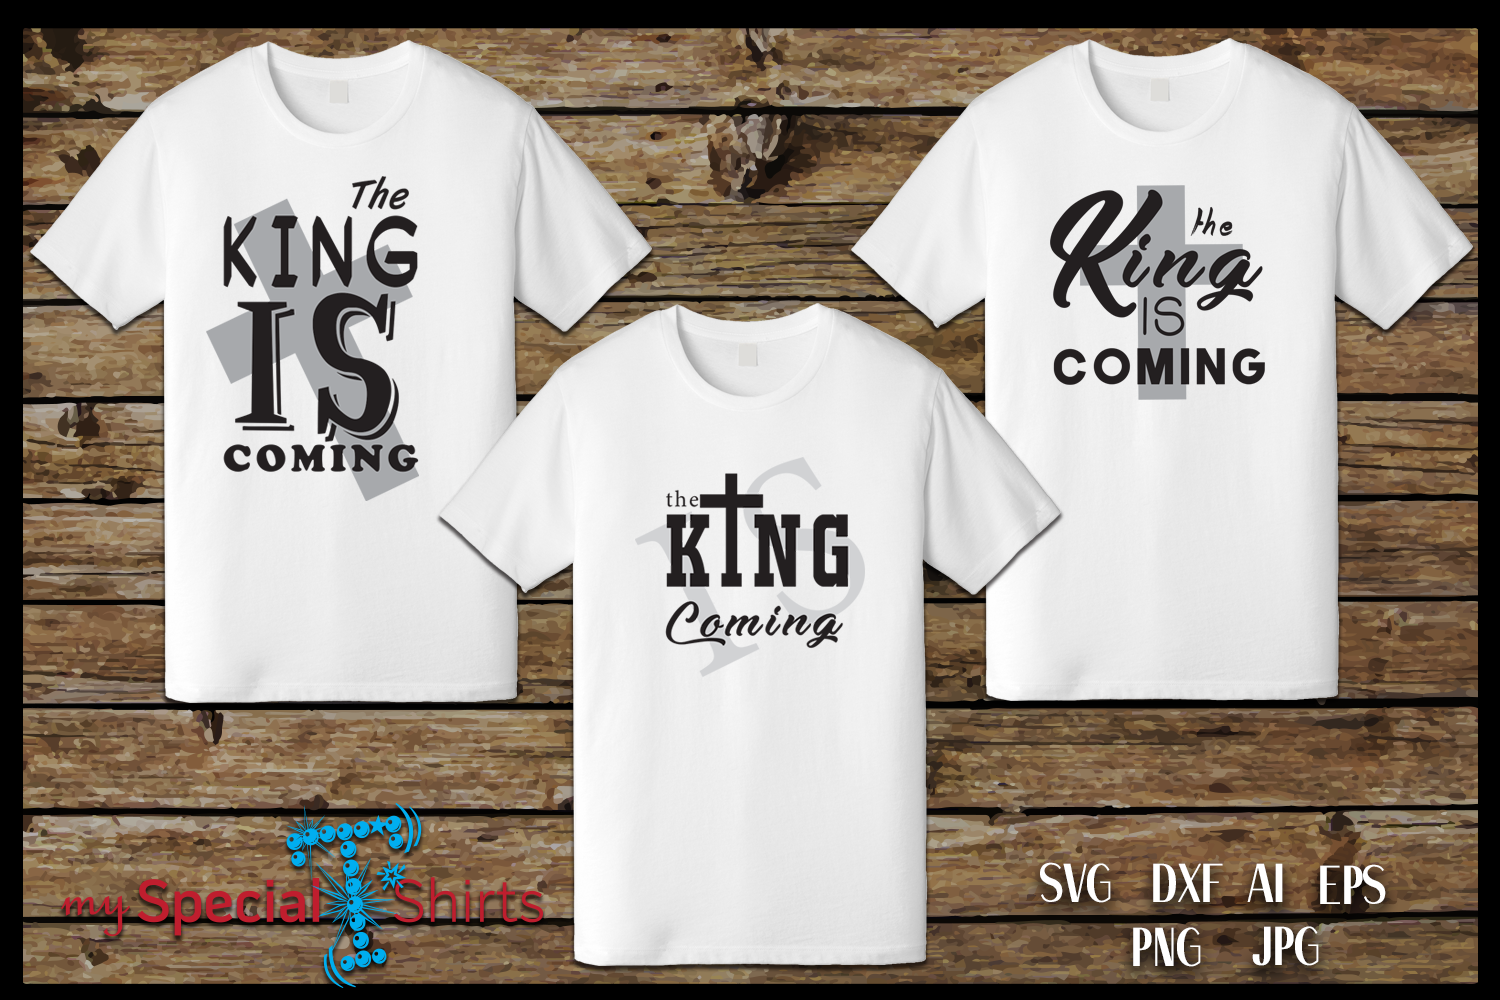 The King is Coming, Easter, Cross SVG, DFX, EPS example image 2